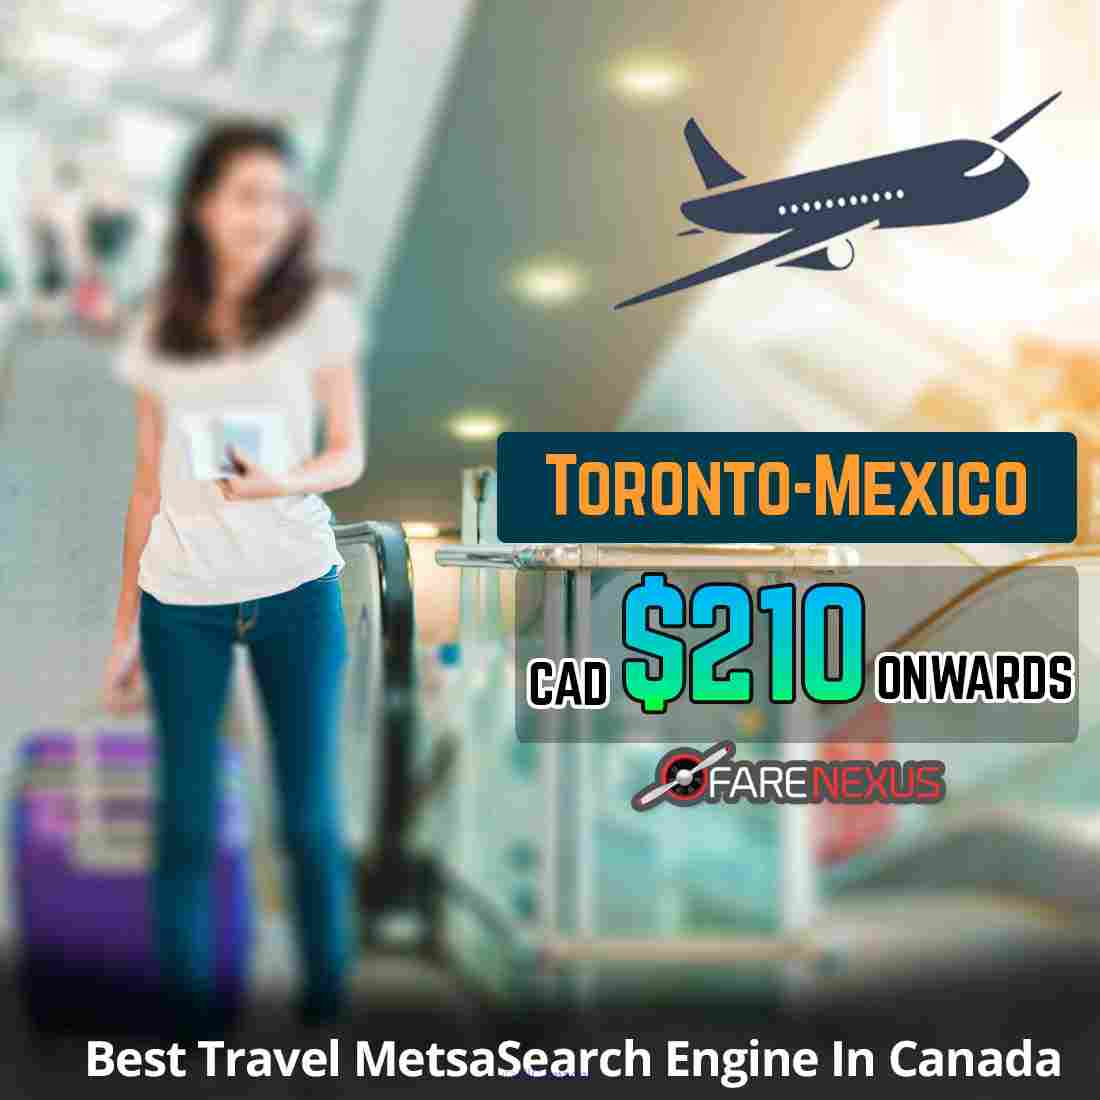 Book One Way flight Toronto-Mexico city from CAD $210  Calgary, Alberta, Canada Classifieds